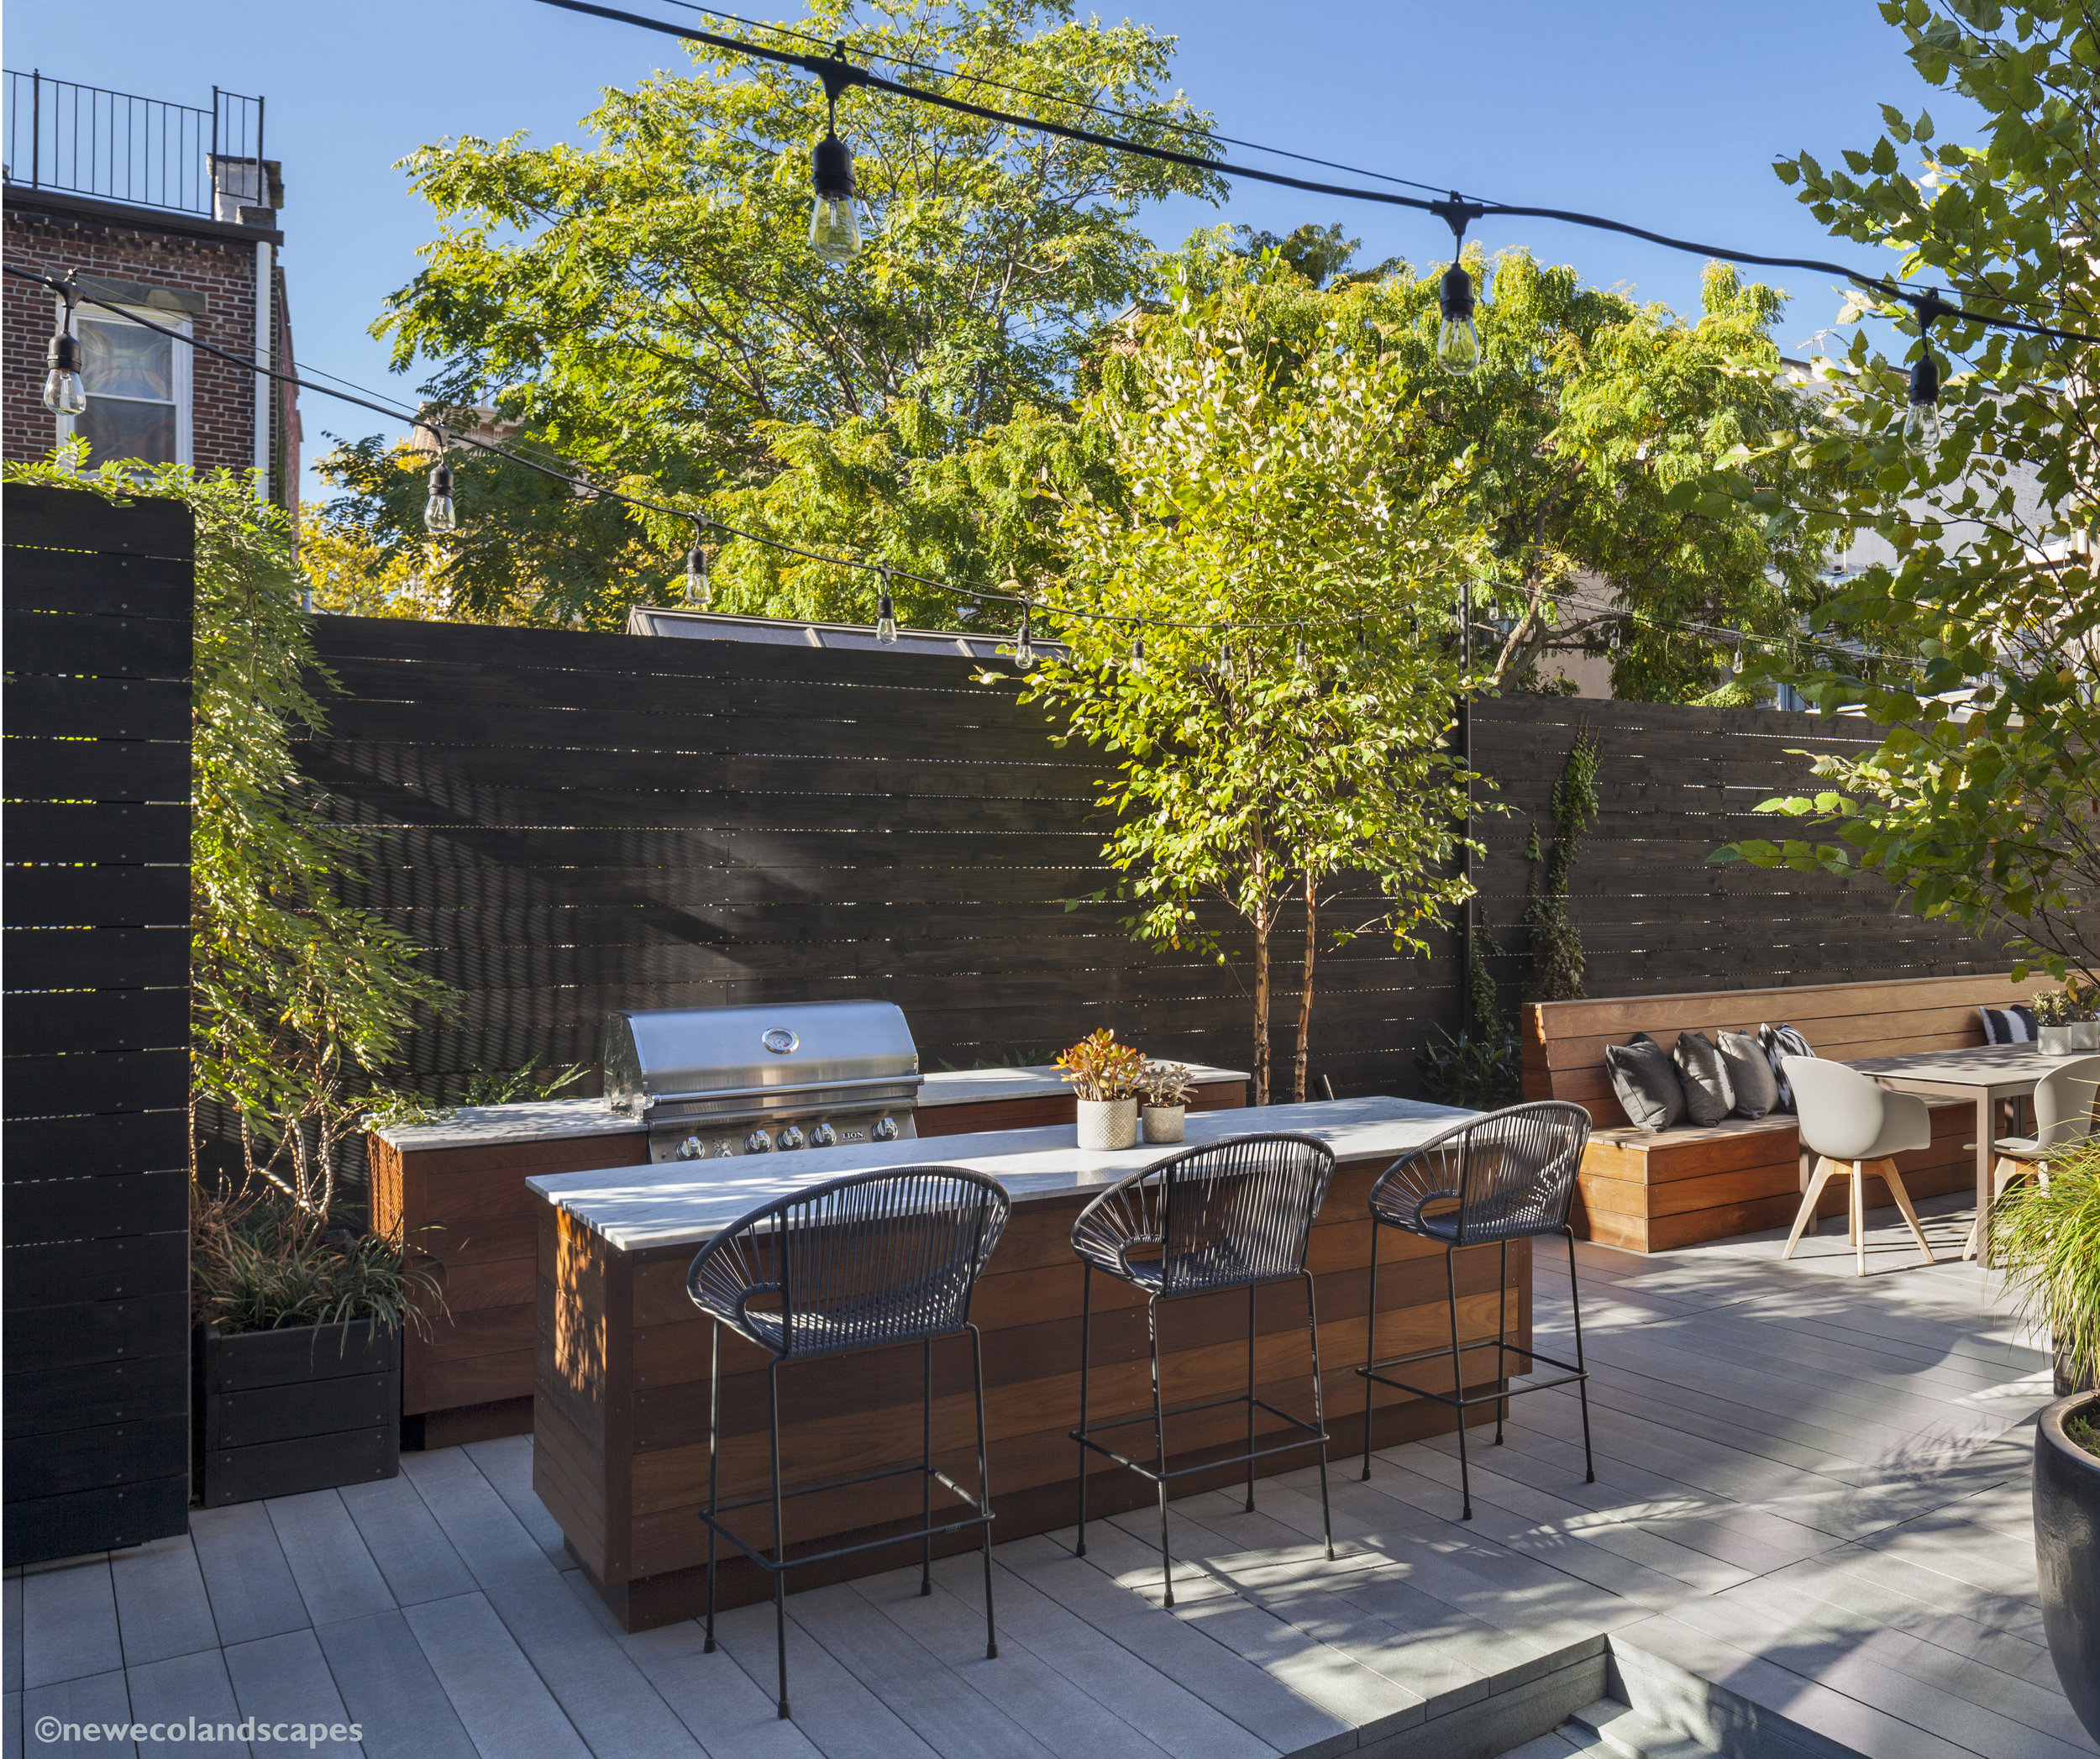 Outdoor space is a sought after amenity in Philadelphia.